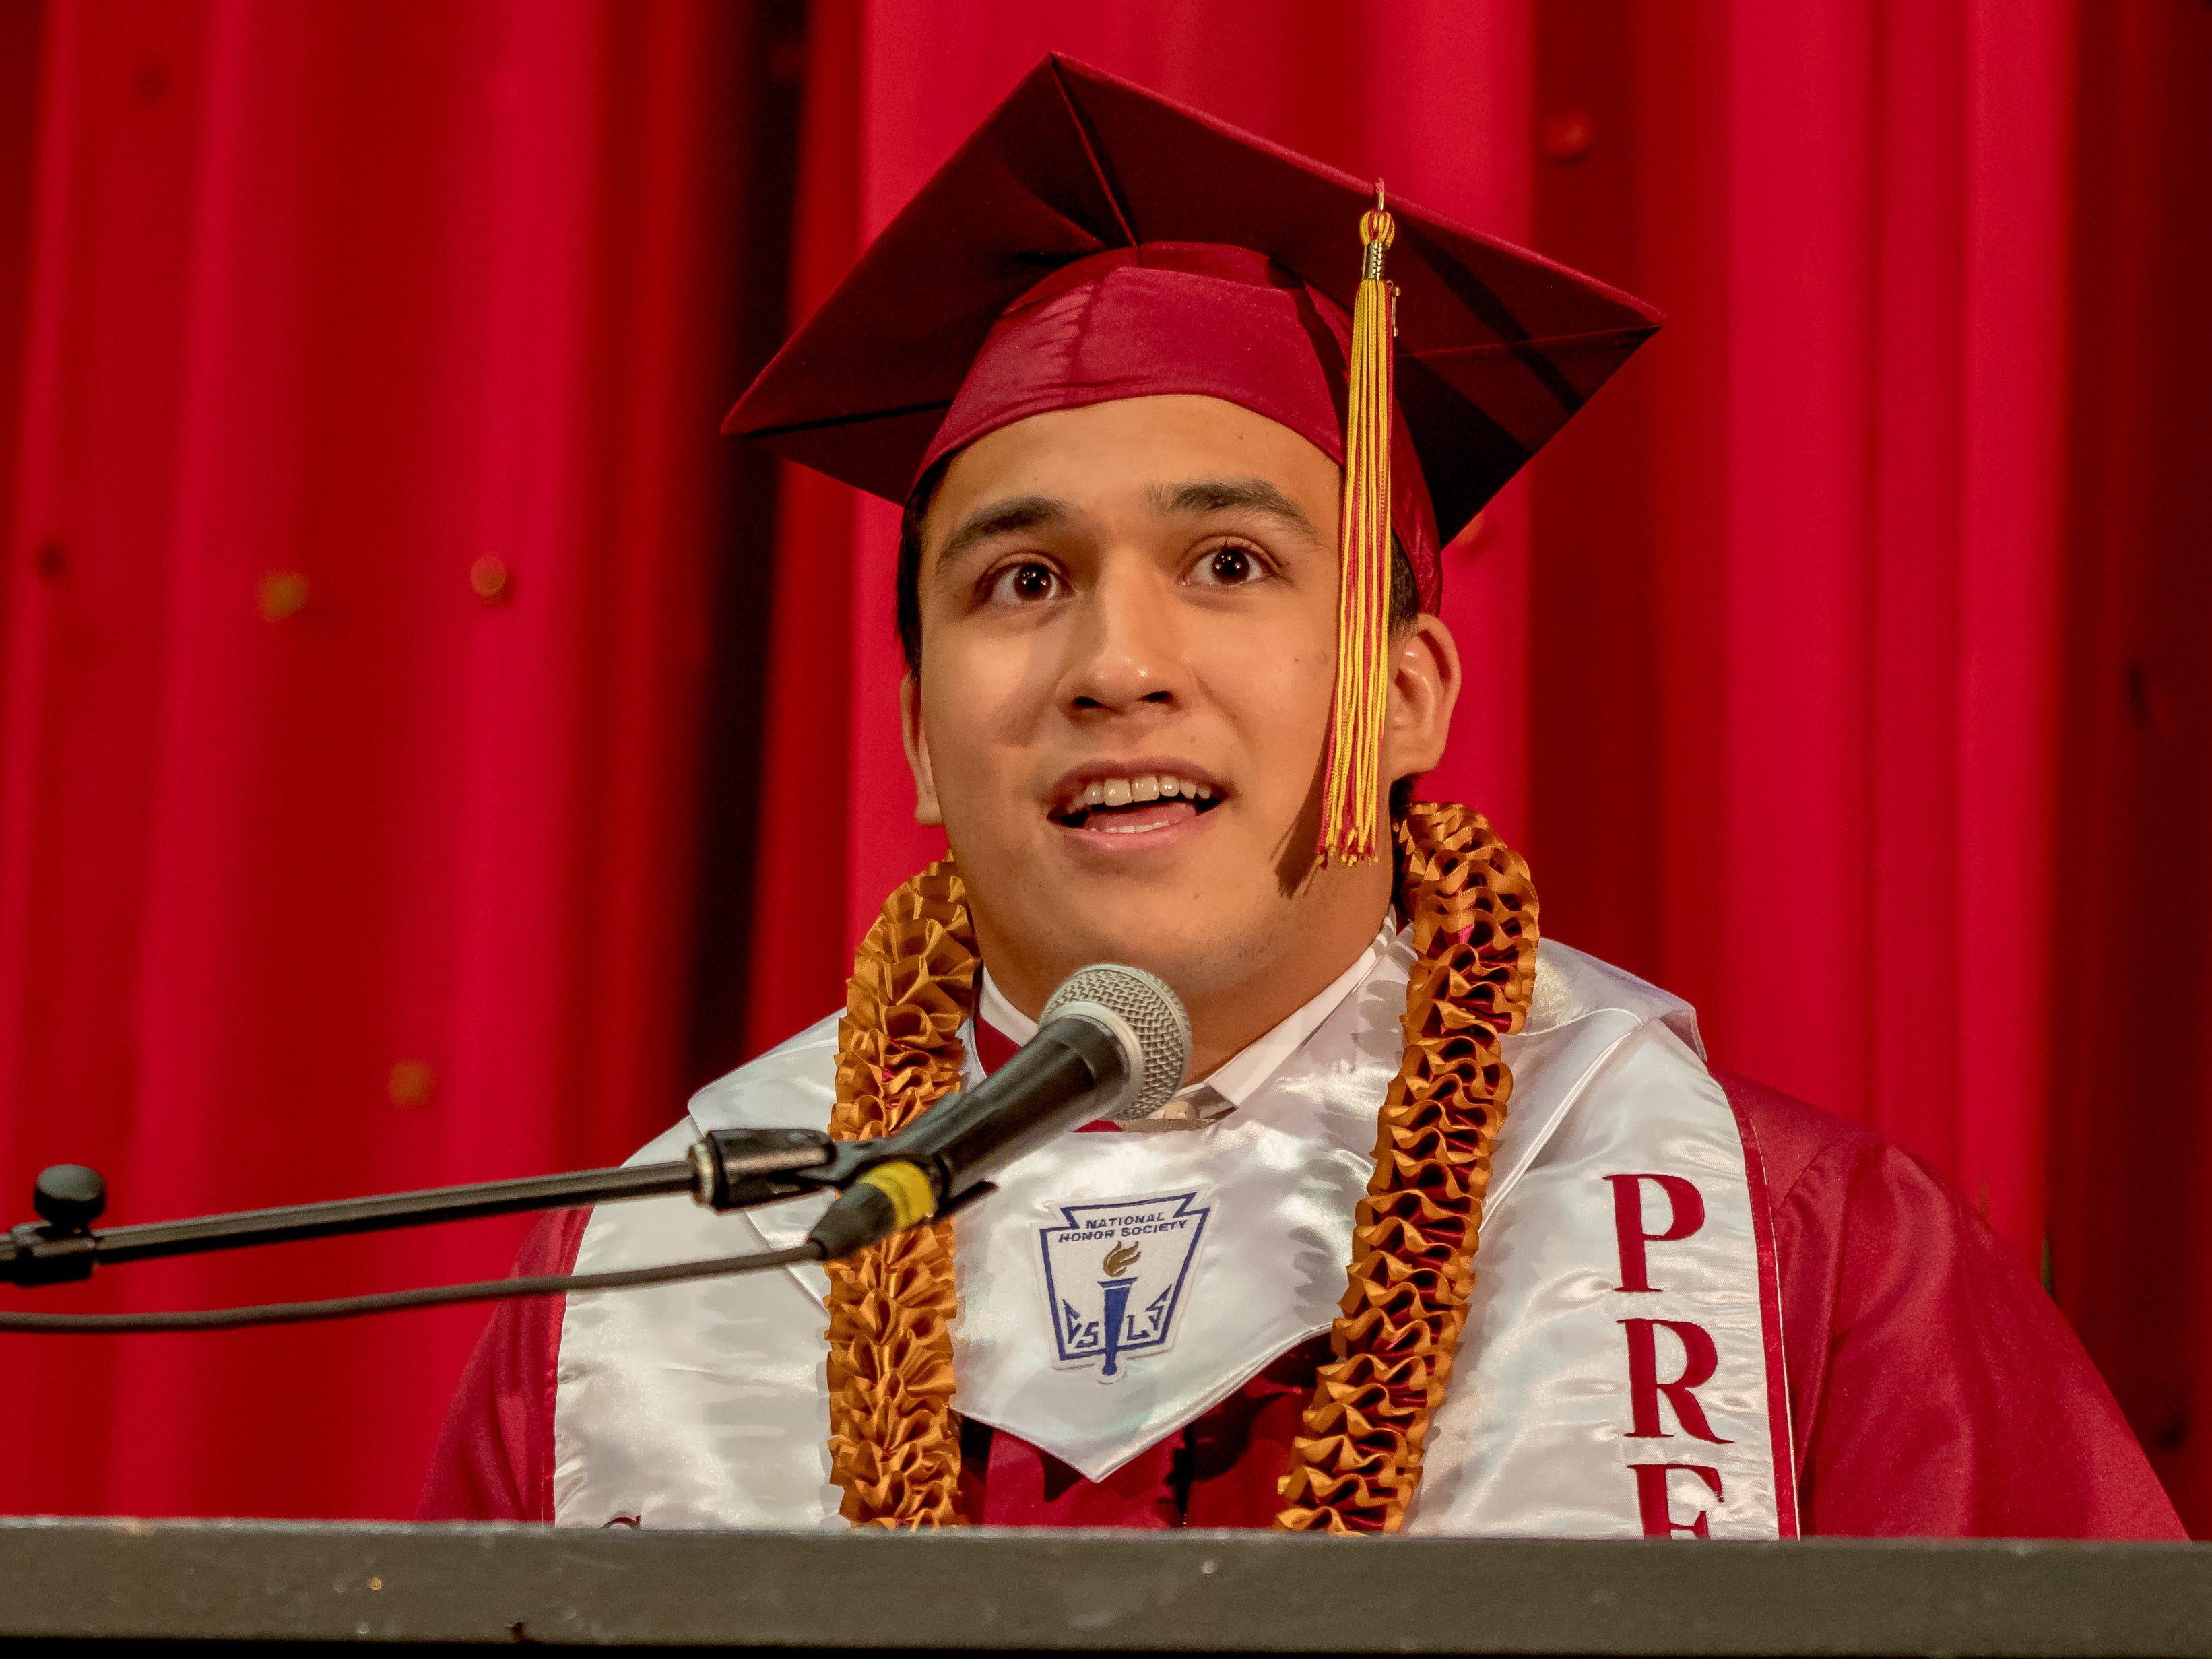 Matias Makanahiwahiwa Calvo delivers his valedictory speech during the Father Duenas Memorial School Class of 2019 commencement ceremony at the Phoenix Center on May 8, 2019.